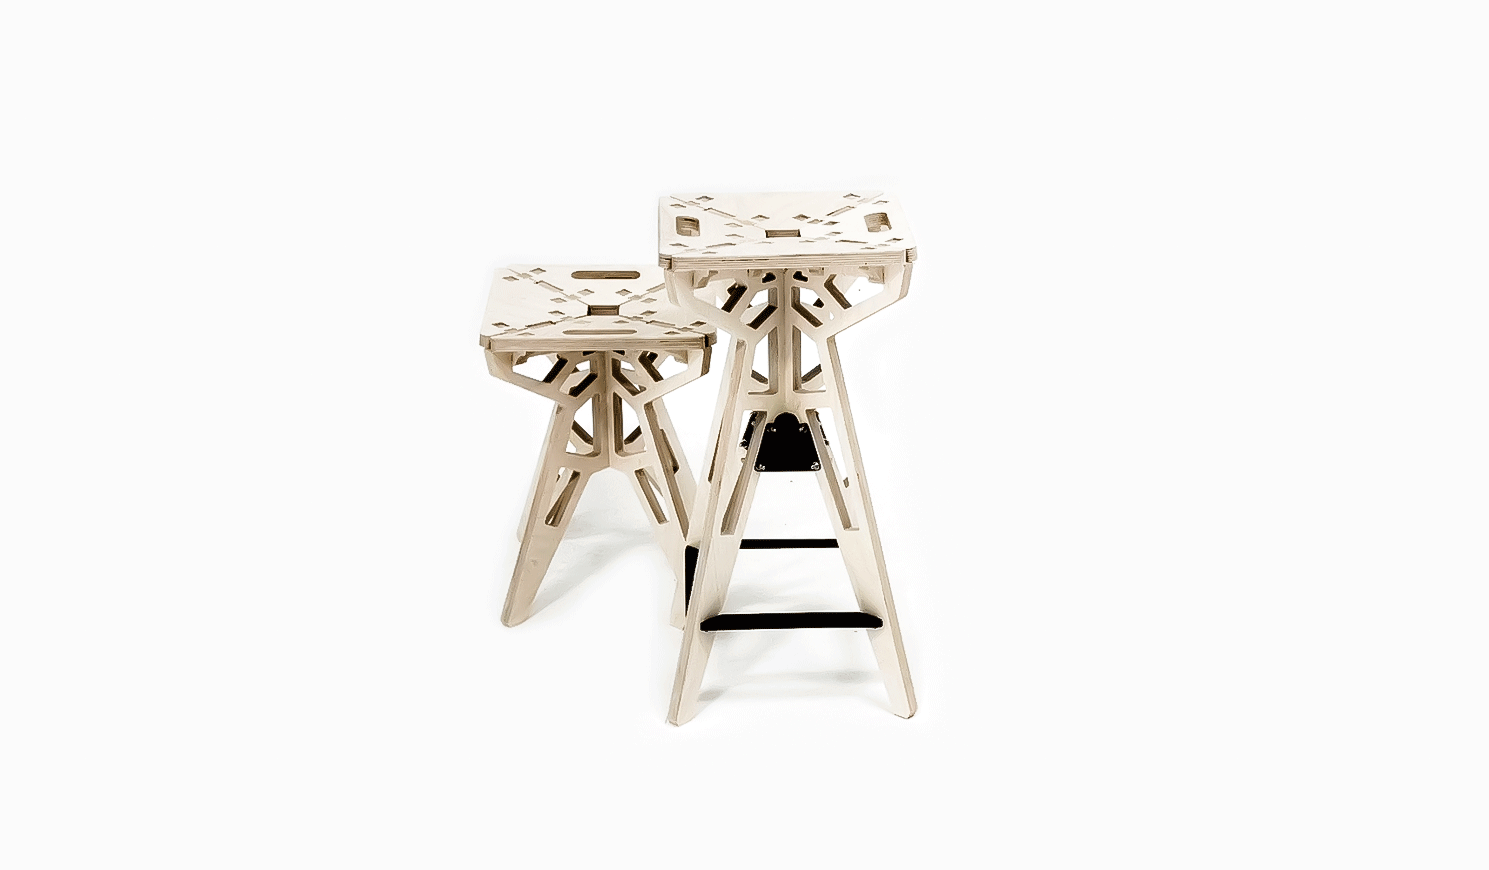 Space stools